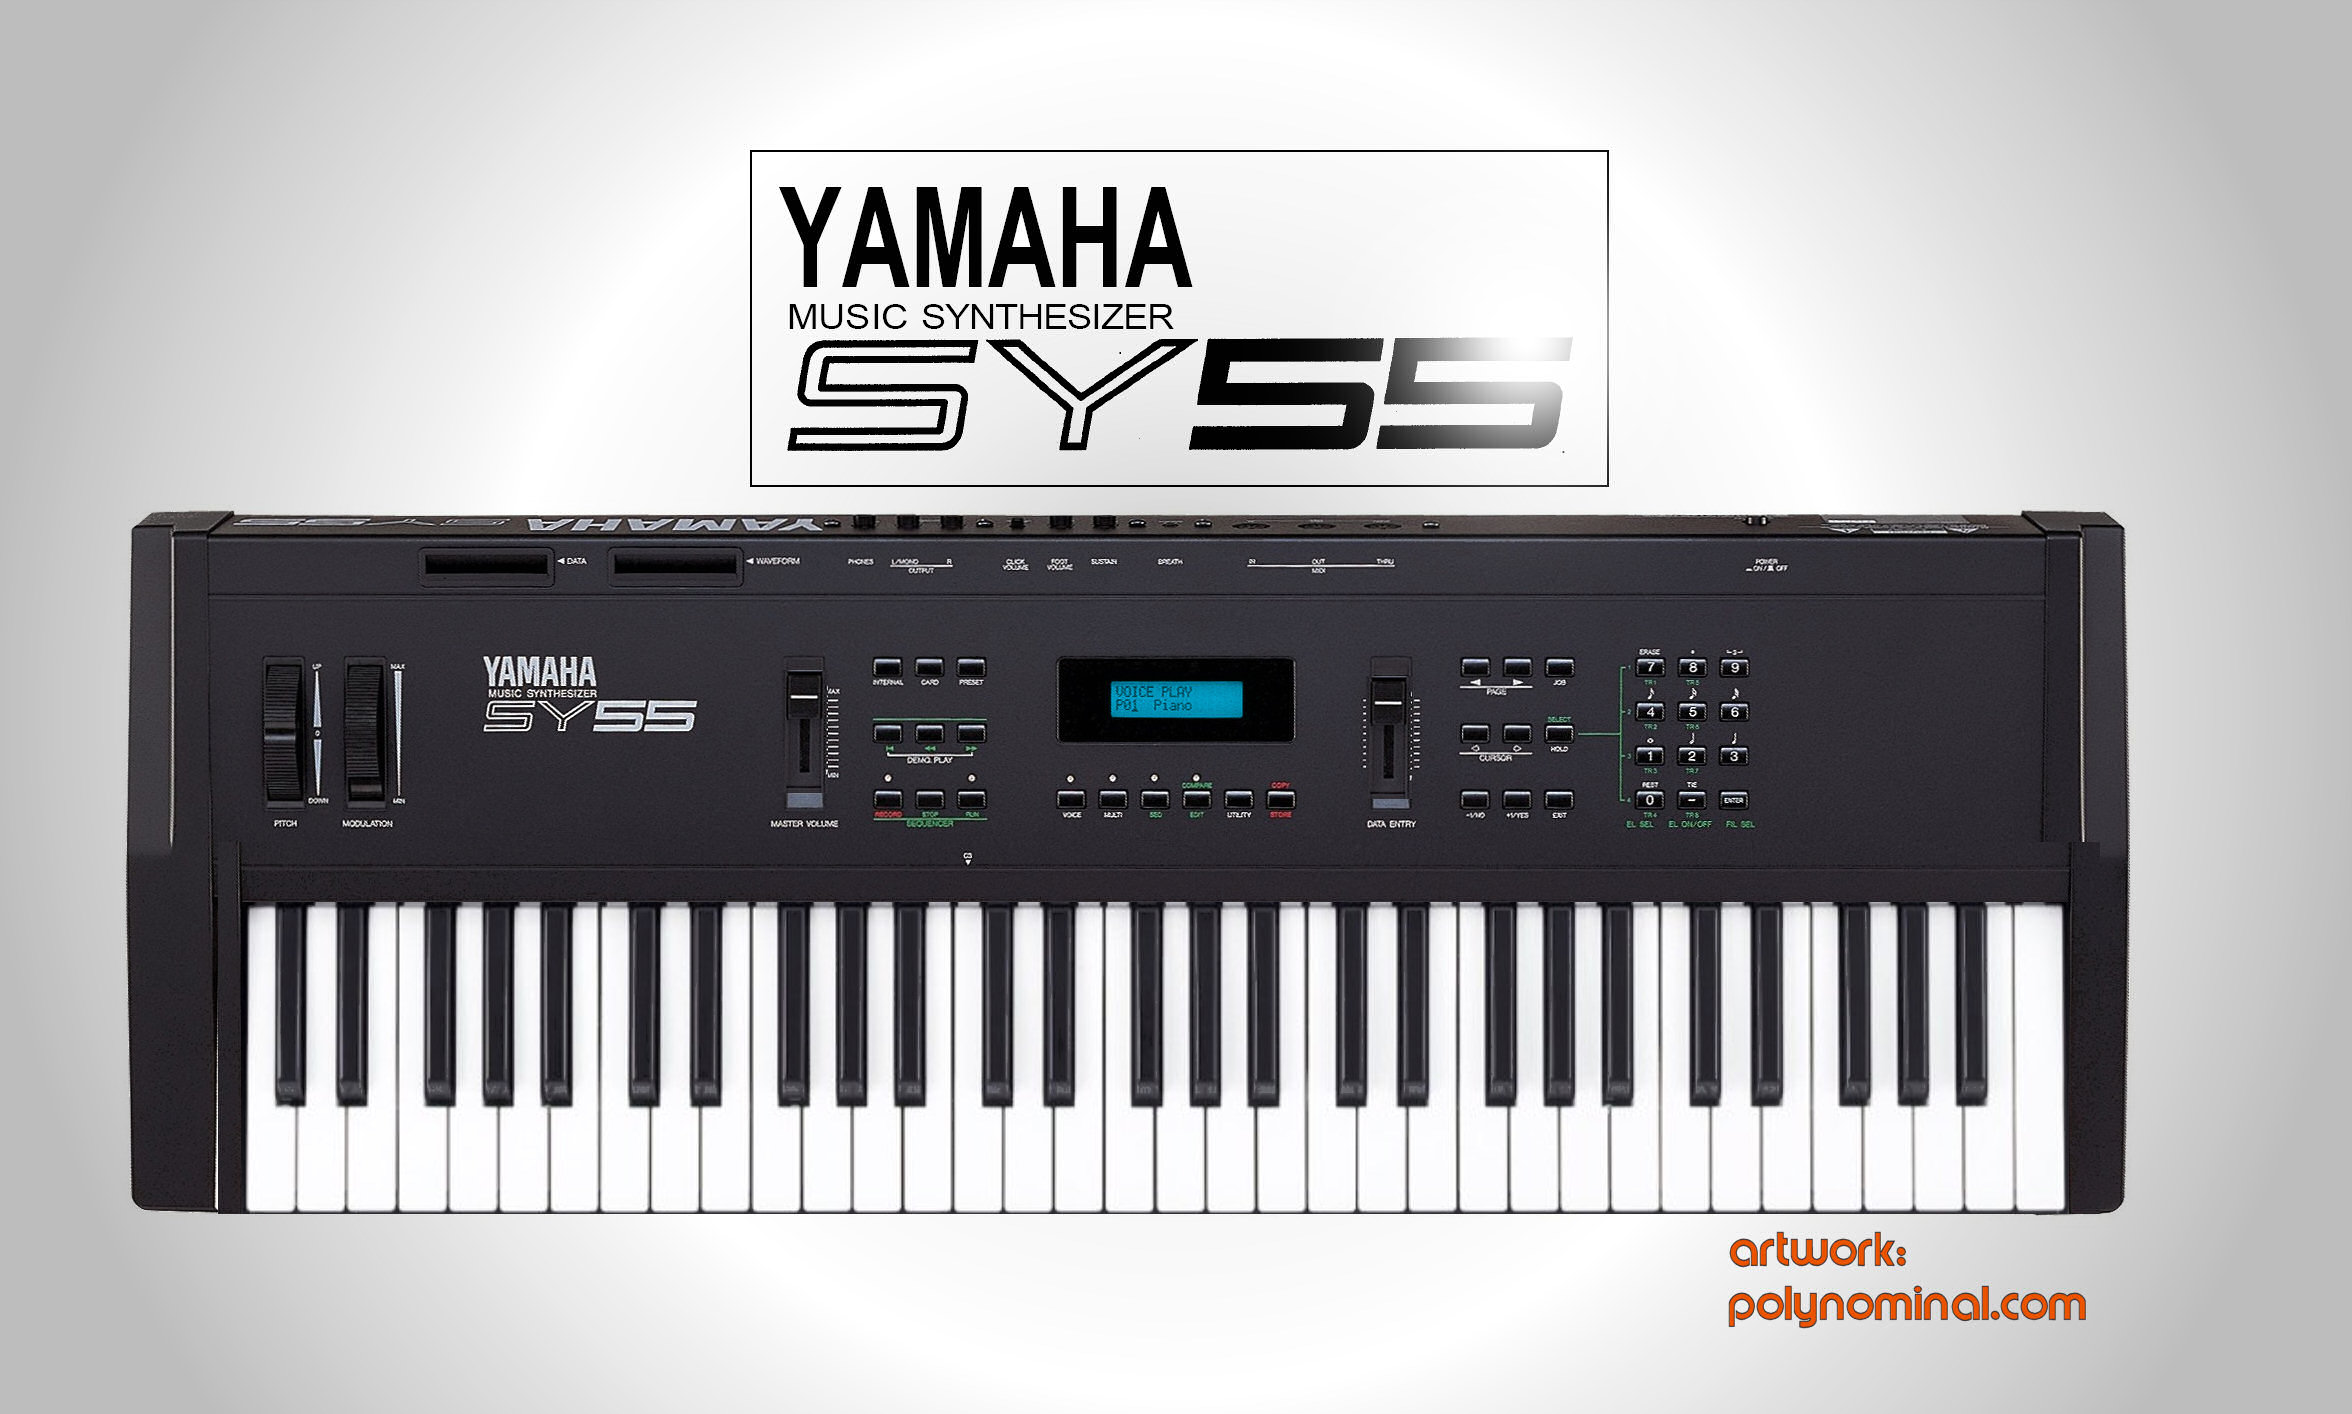 Yamaha sy 55 for Yamaha 3 octave keyboard